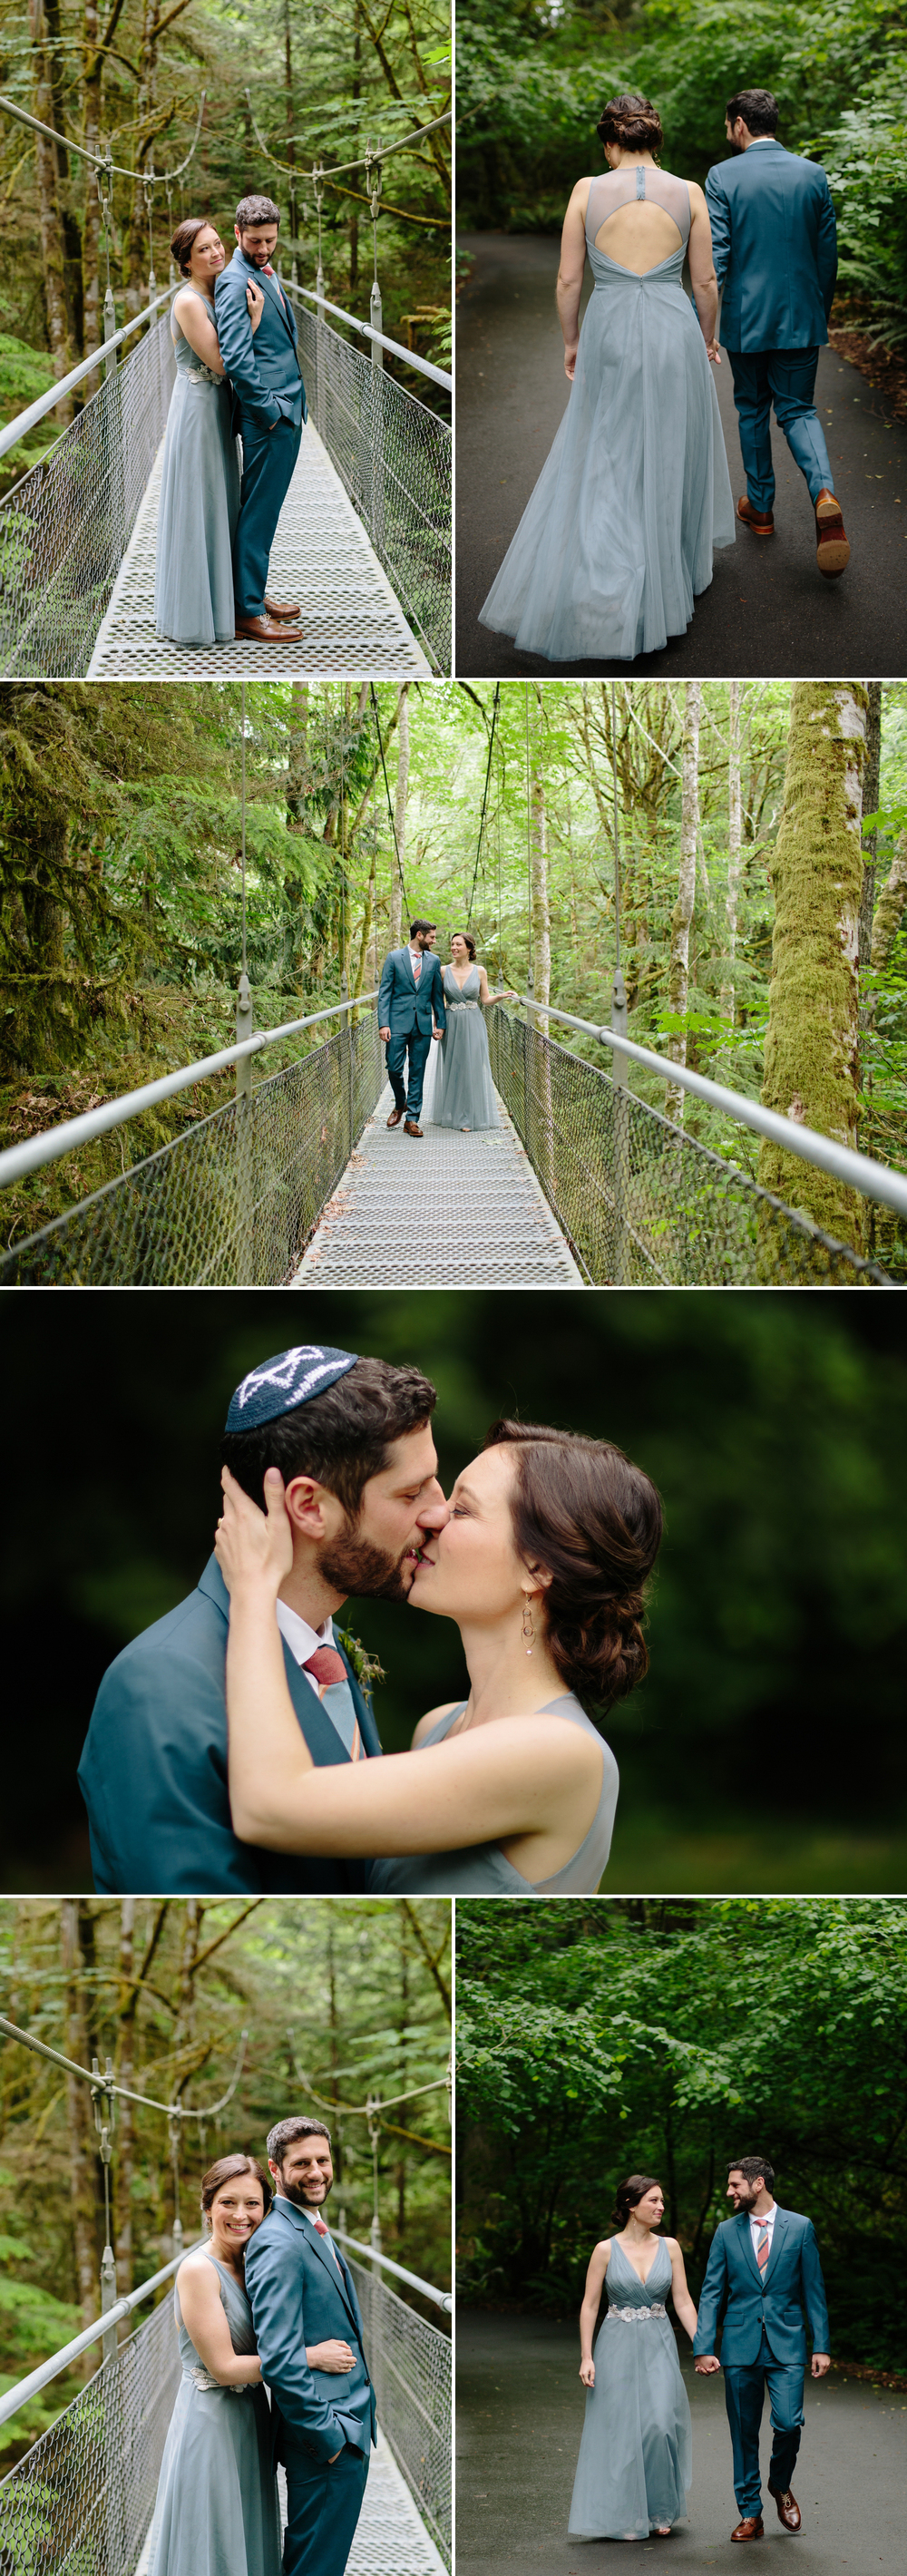 cameron-zegers-wedding-photographer-seattle-islandwood-bainbridge-island-7.jpg